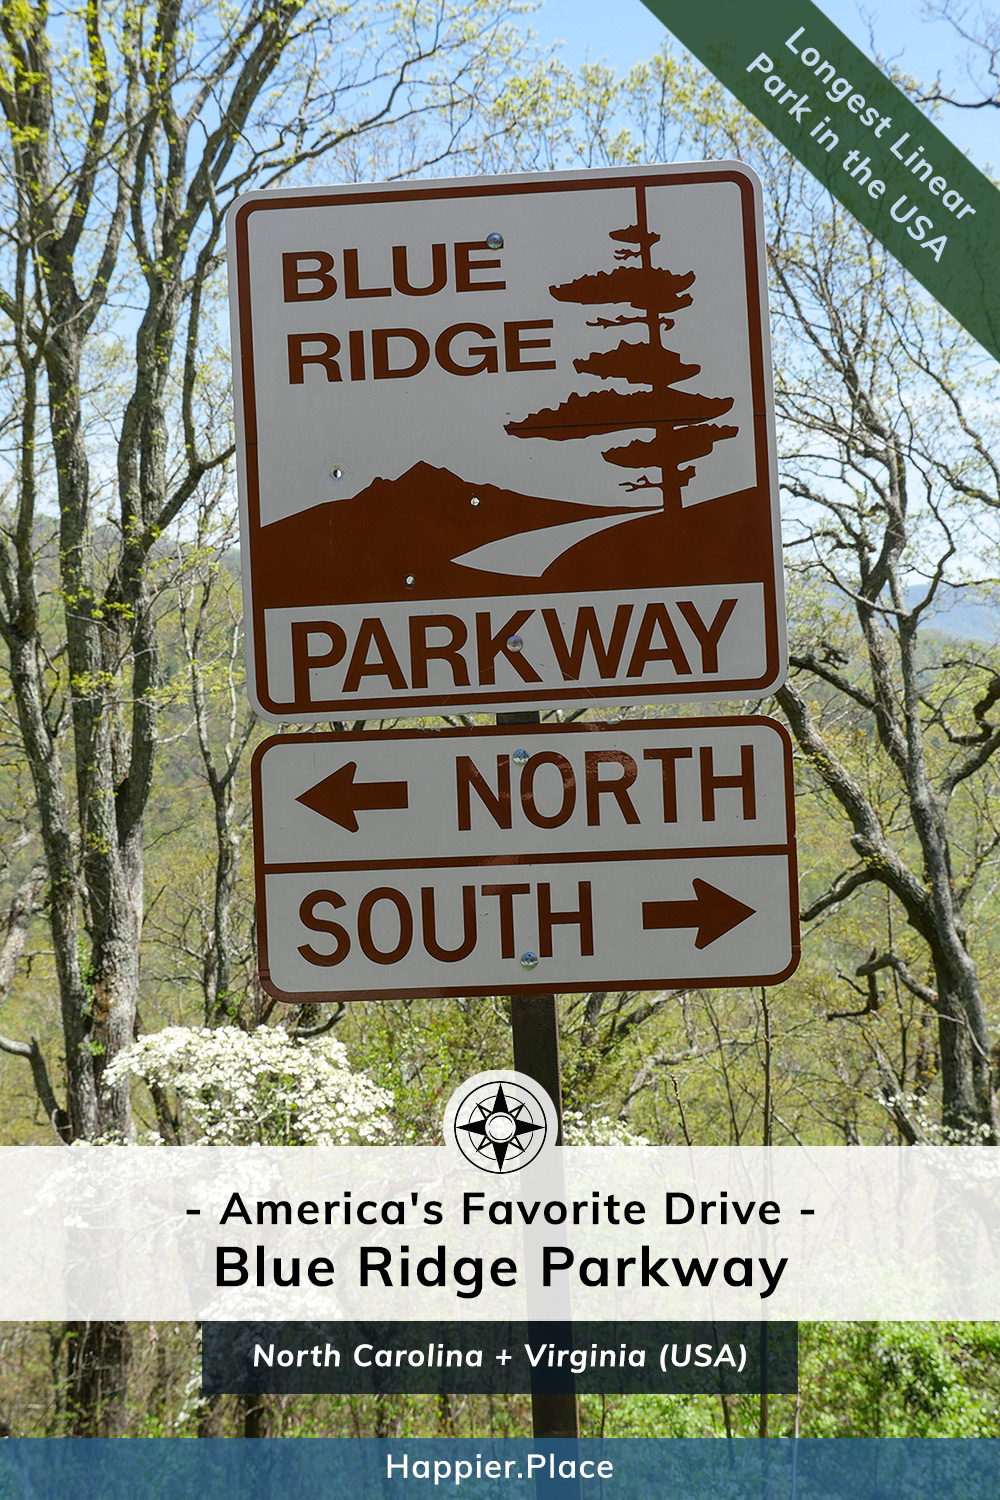 Blue Ridge Parkway: America\'s Favorite Drive and Longest Linear Park in the USA from Virginia to North Carolina.